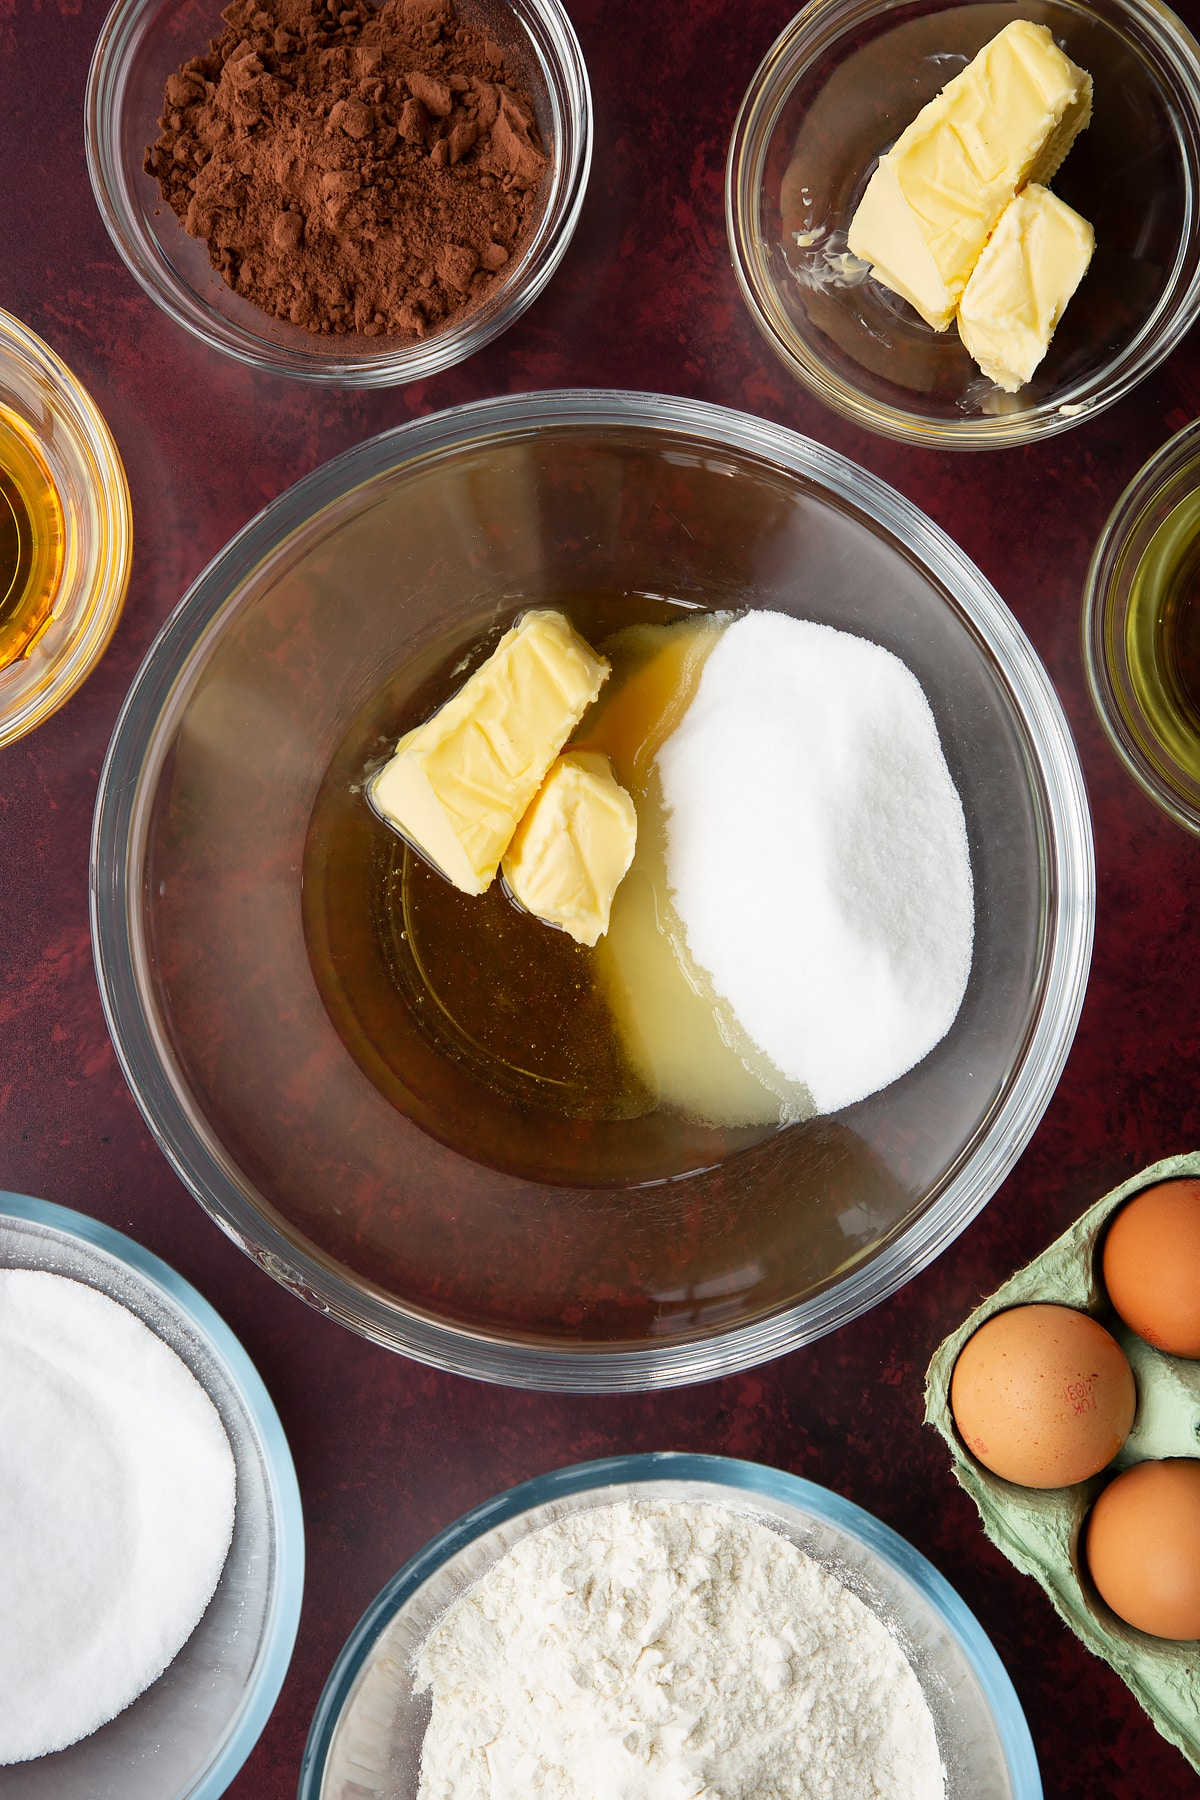 Caster sugar, golden syrup, oil and softened butter in a glass mixing bowl. Ingredients to make chocolate drizzle cake surround the bowl.